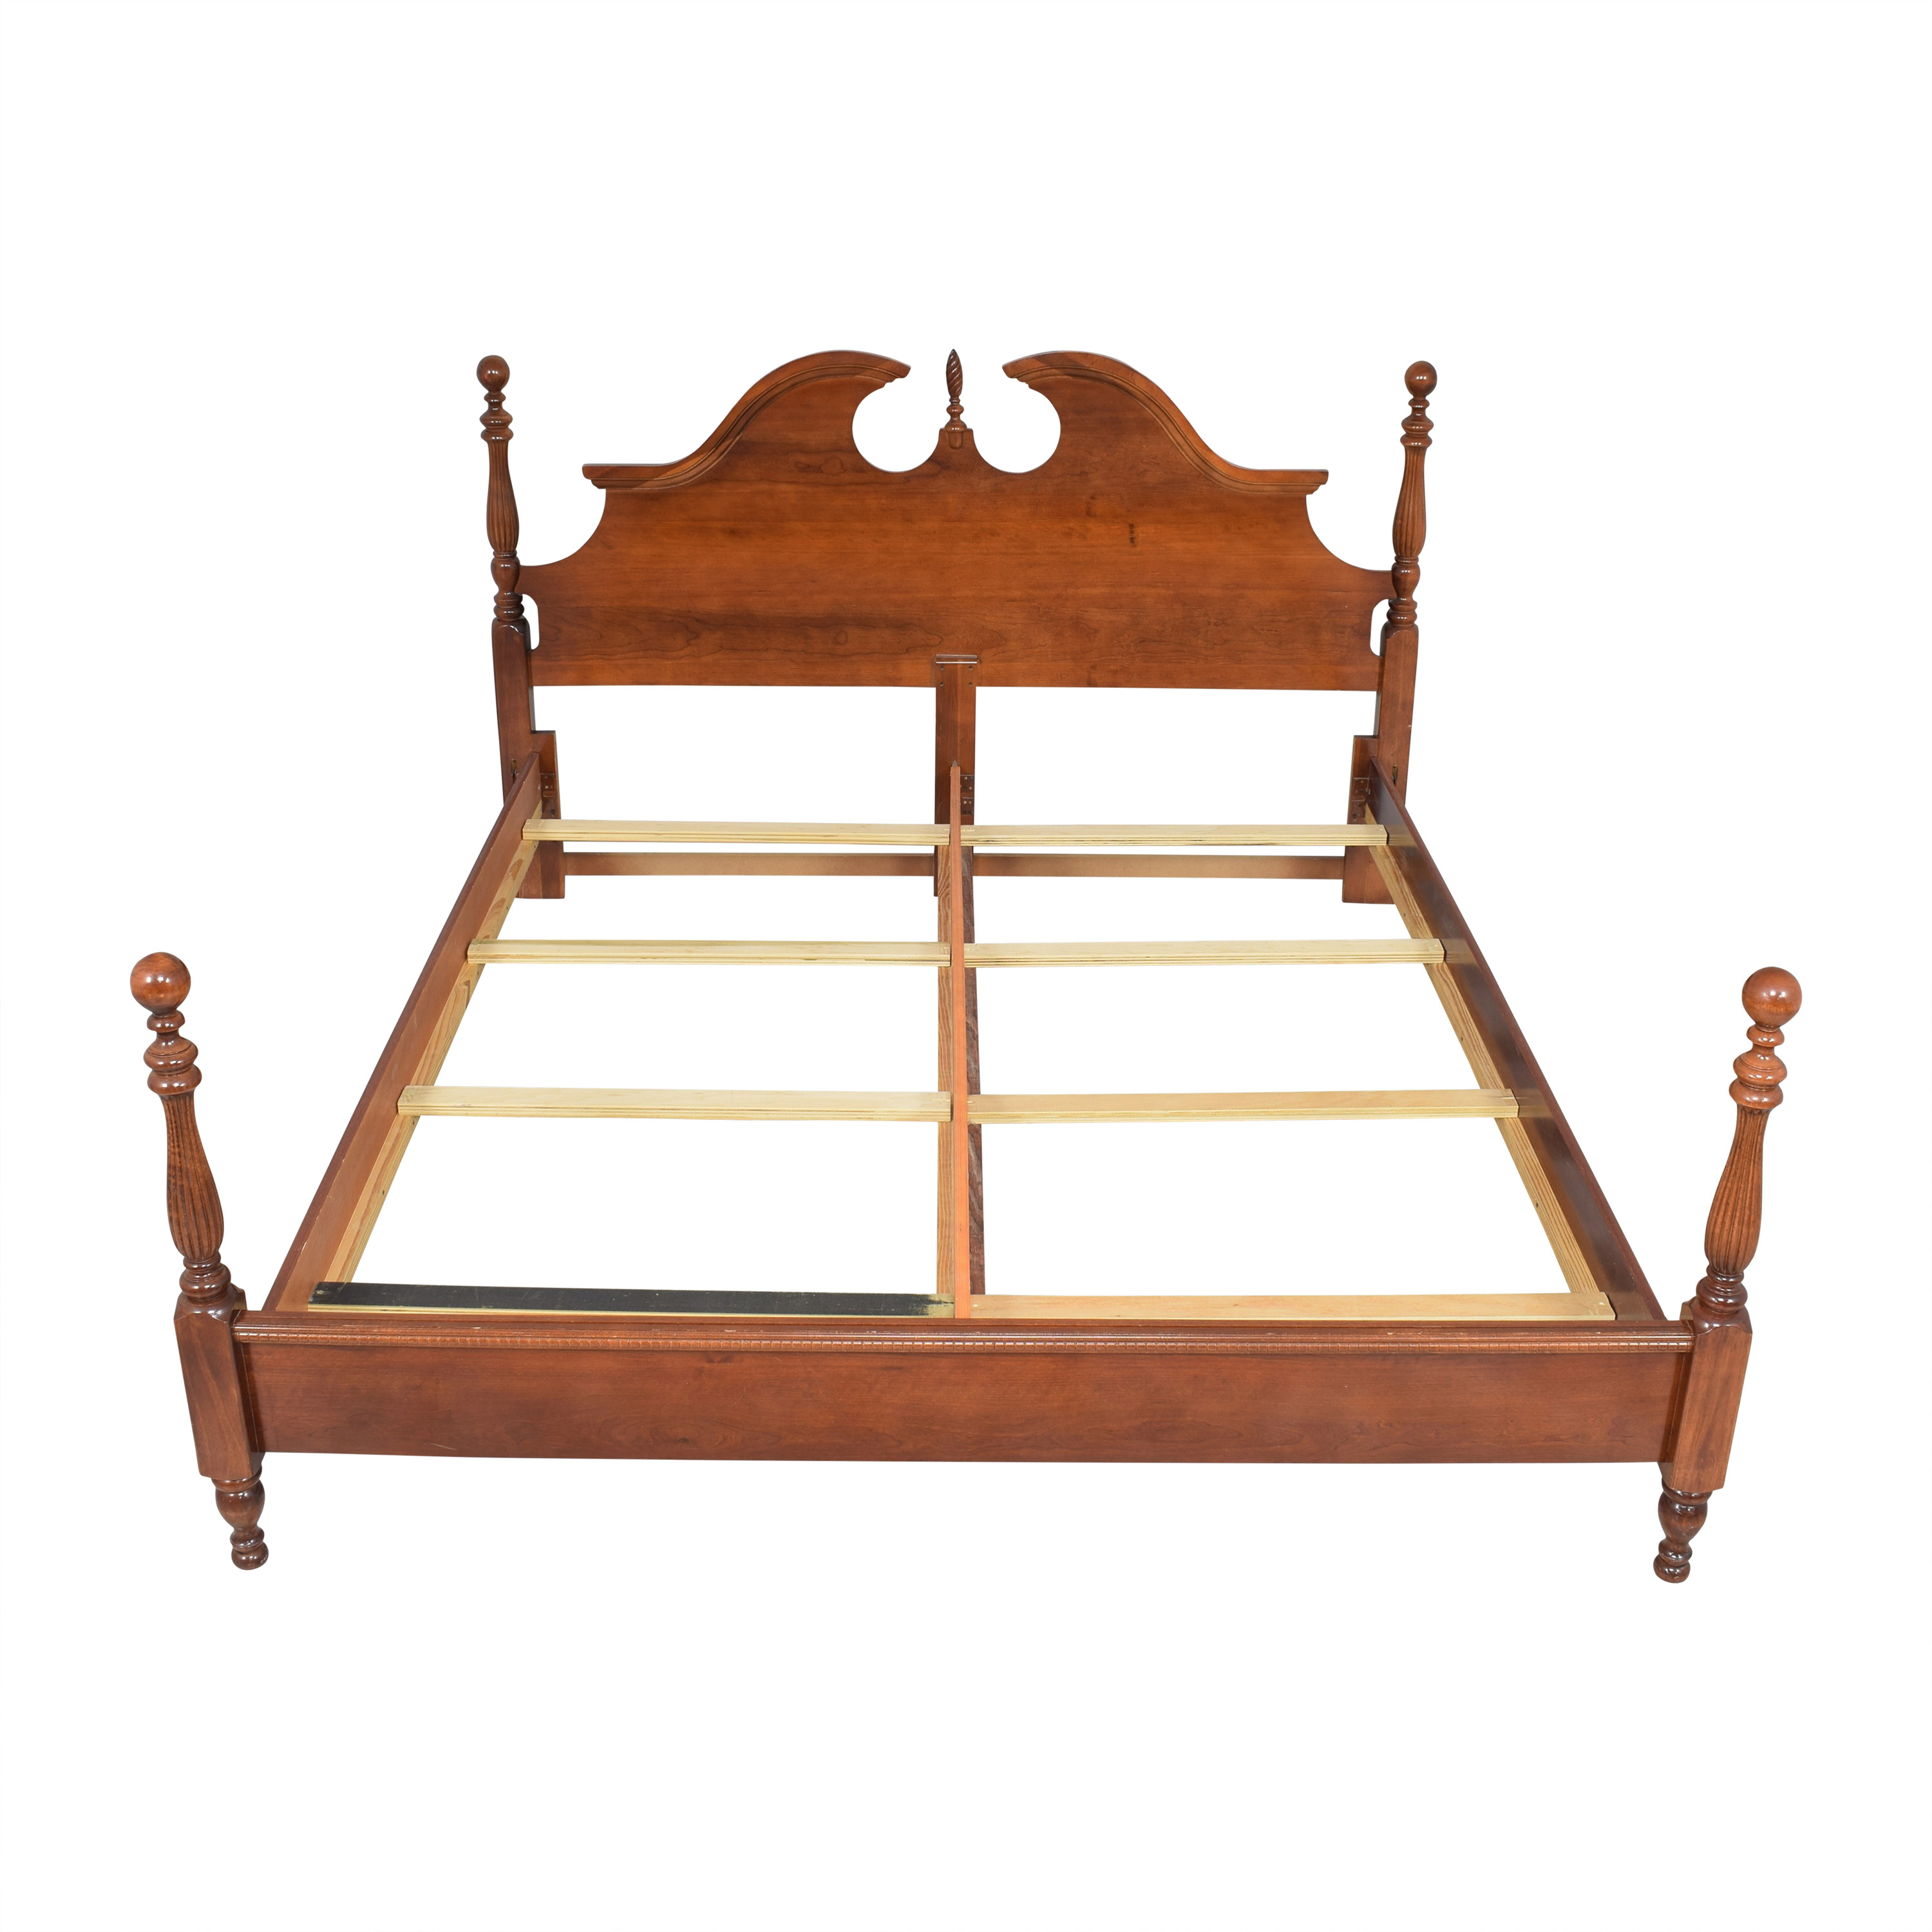 Raymour & Flanigan Four Poster California King Bed / Beds